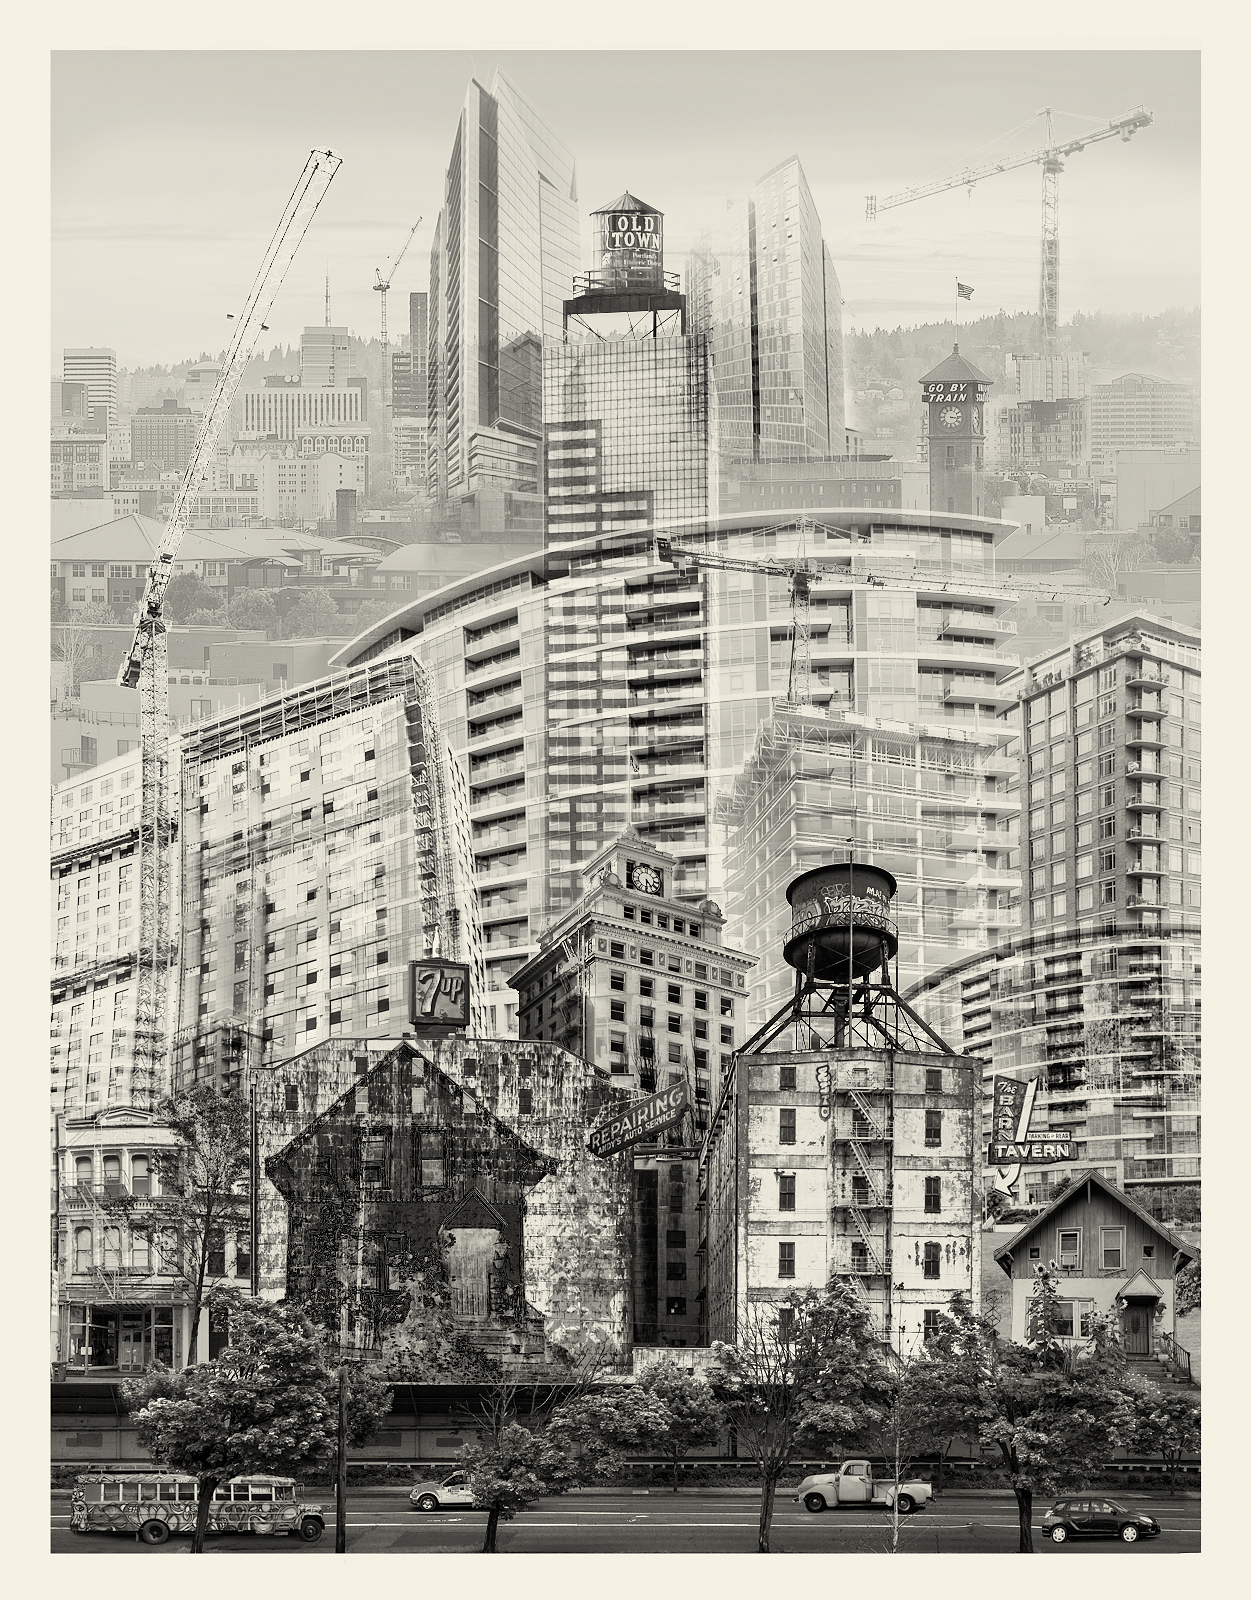 Photomontage of urban development and change in Portland Oregon. Trying to preserve the past despite over development.